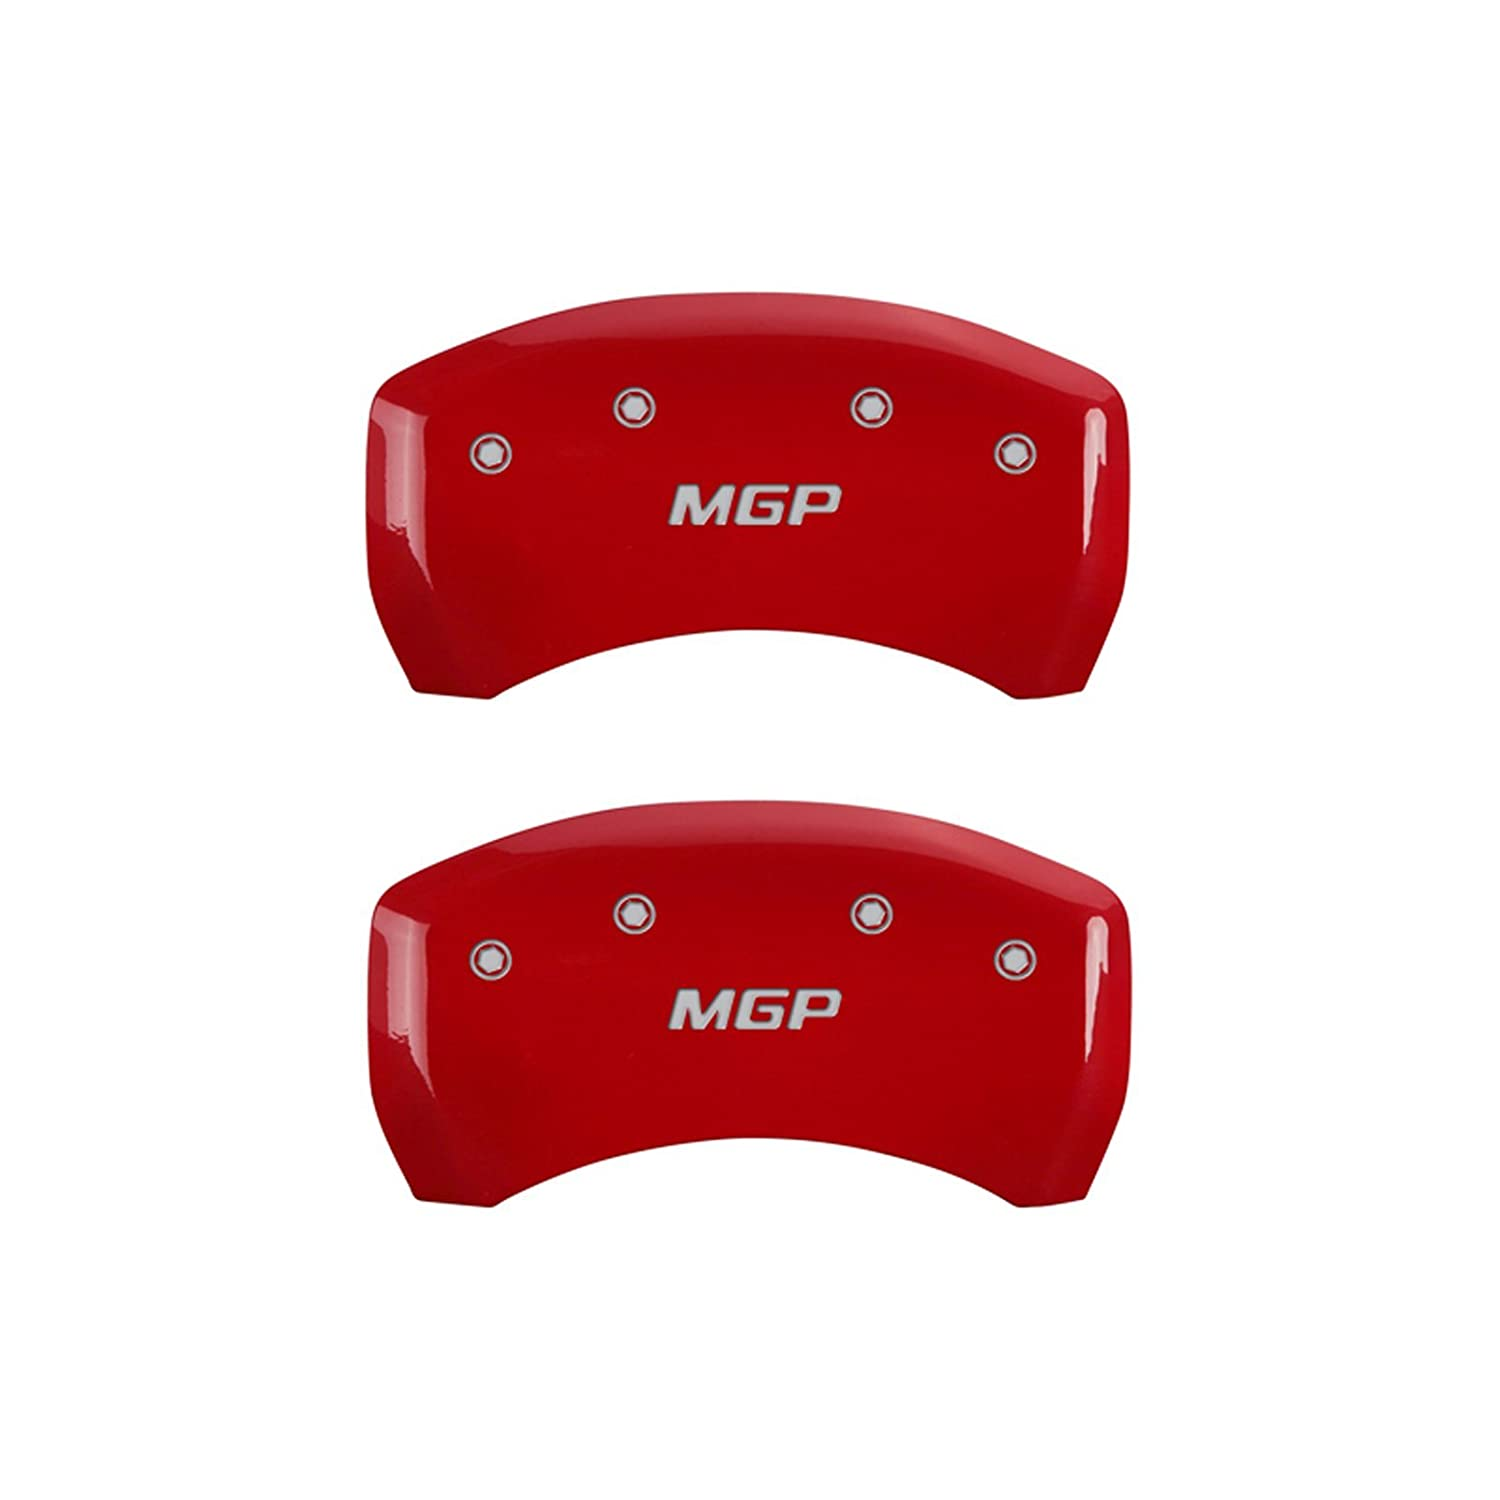 MGP Caliper Covers 17099SMGPRD MGP Engraved Caliper Cover with Red Powder Coat Finish and Silver Characters, Set of 4